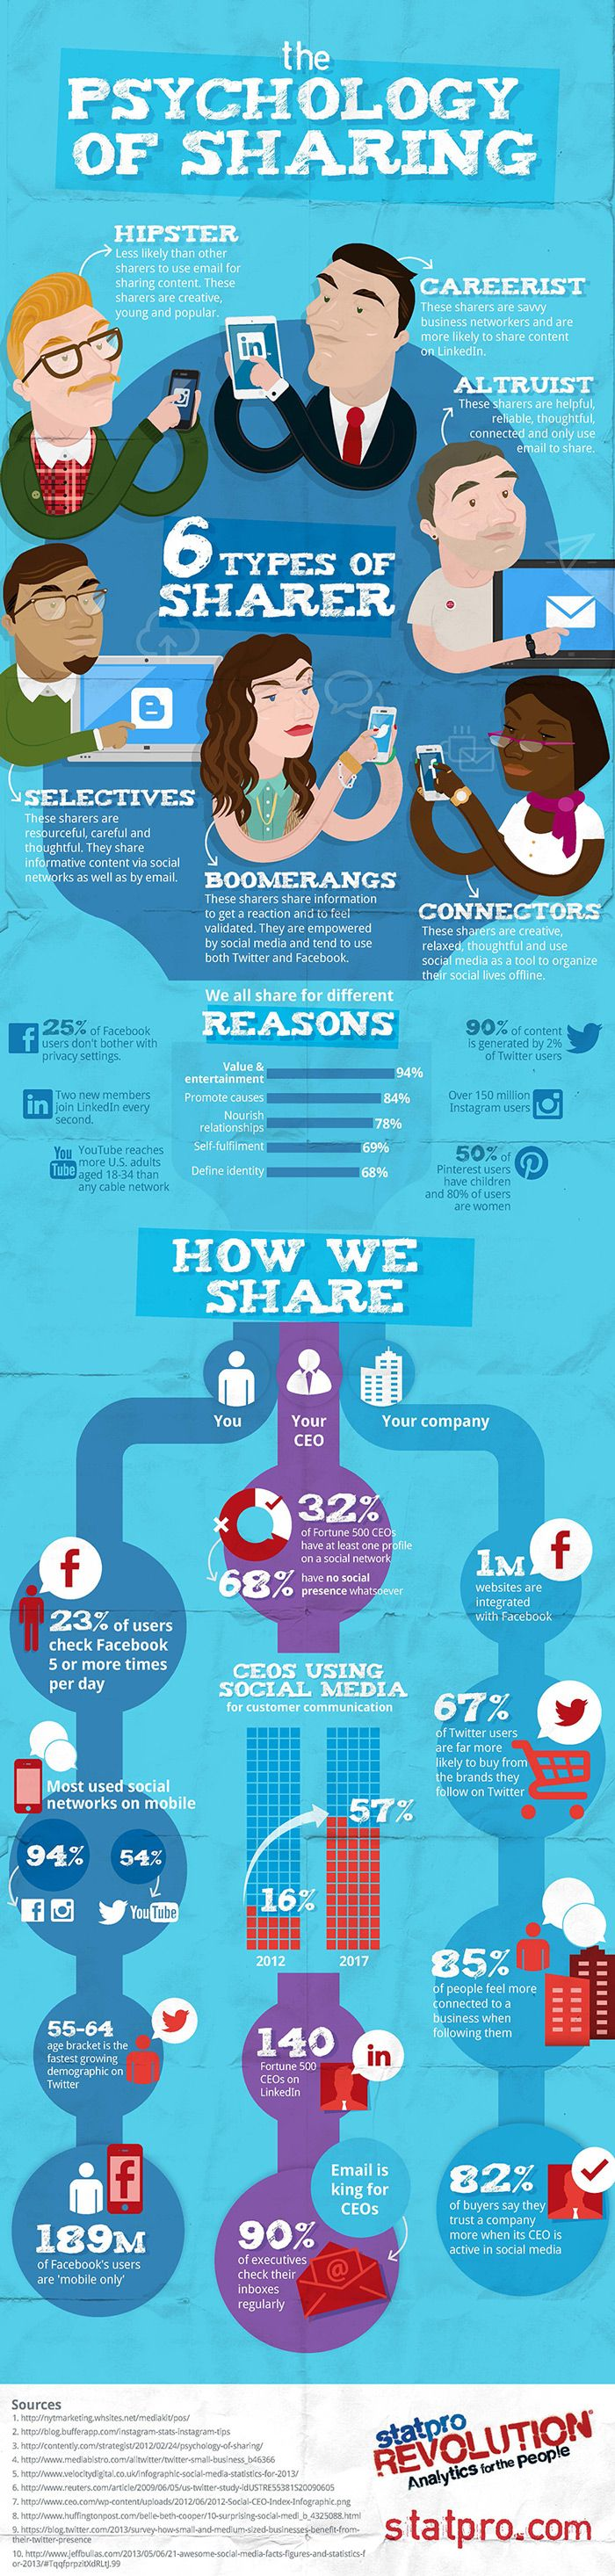 Social Media And The Psychology Of Sharing - Infographic